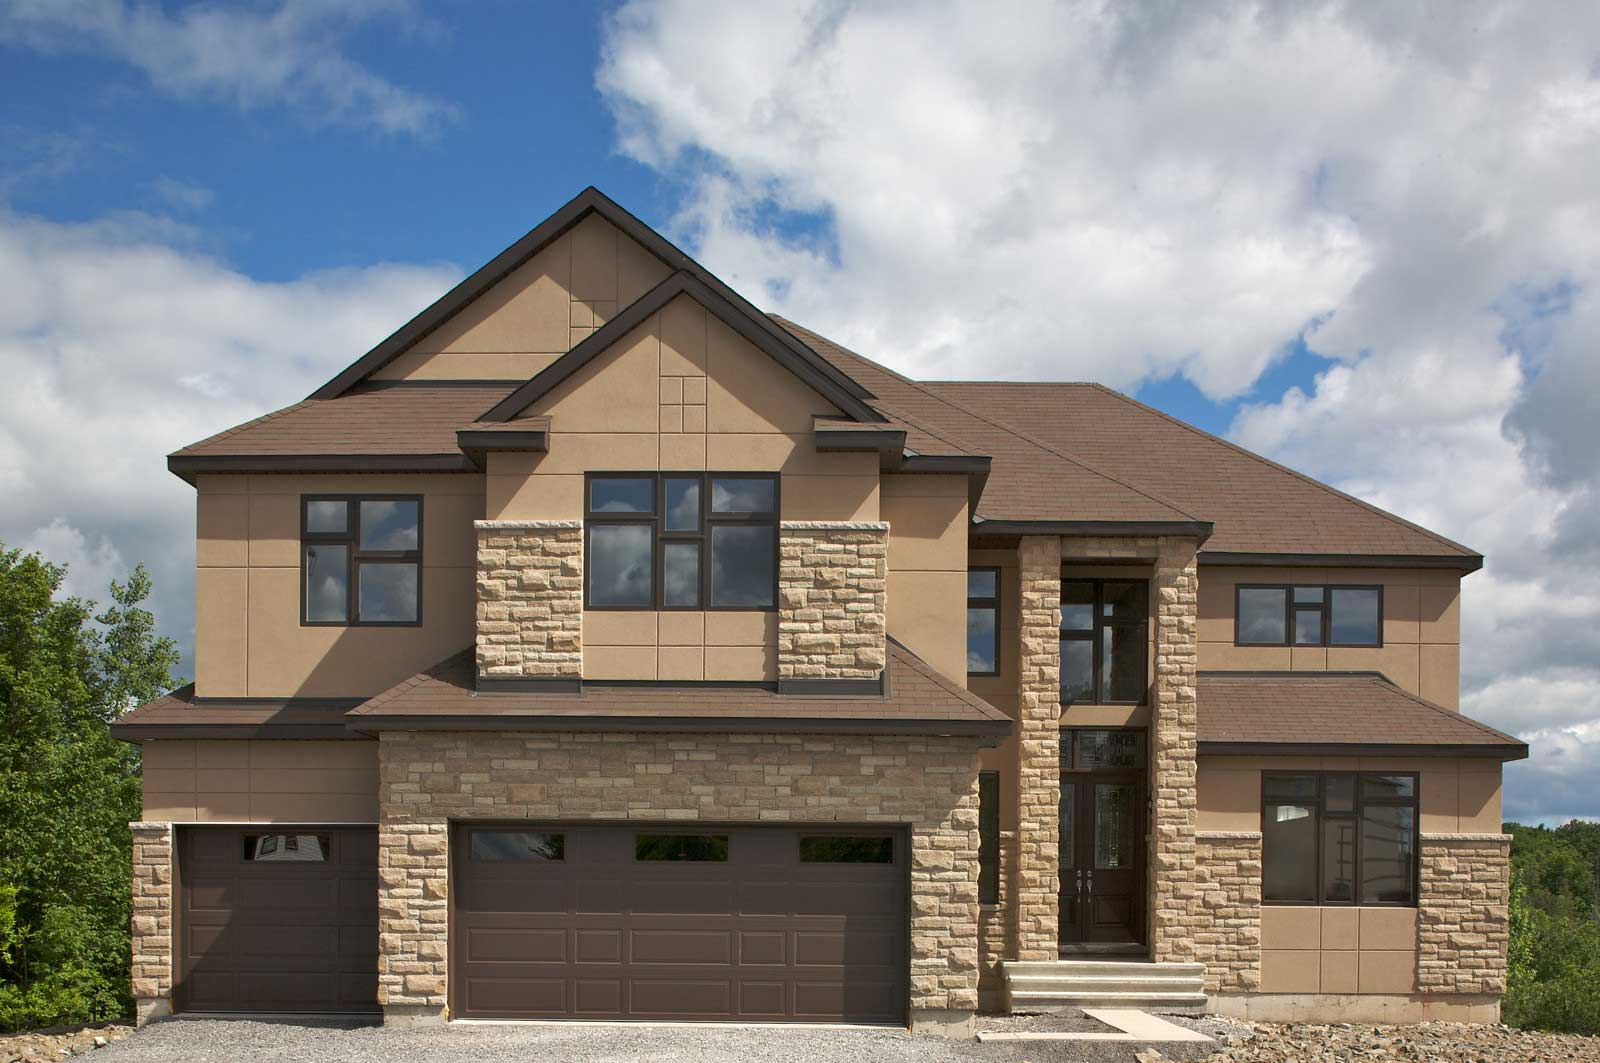 House Builders Ottawa Homes Condos Towns In Calgary Ottawa Tampa Denver